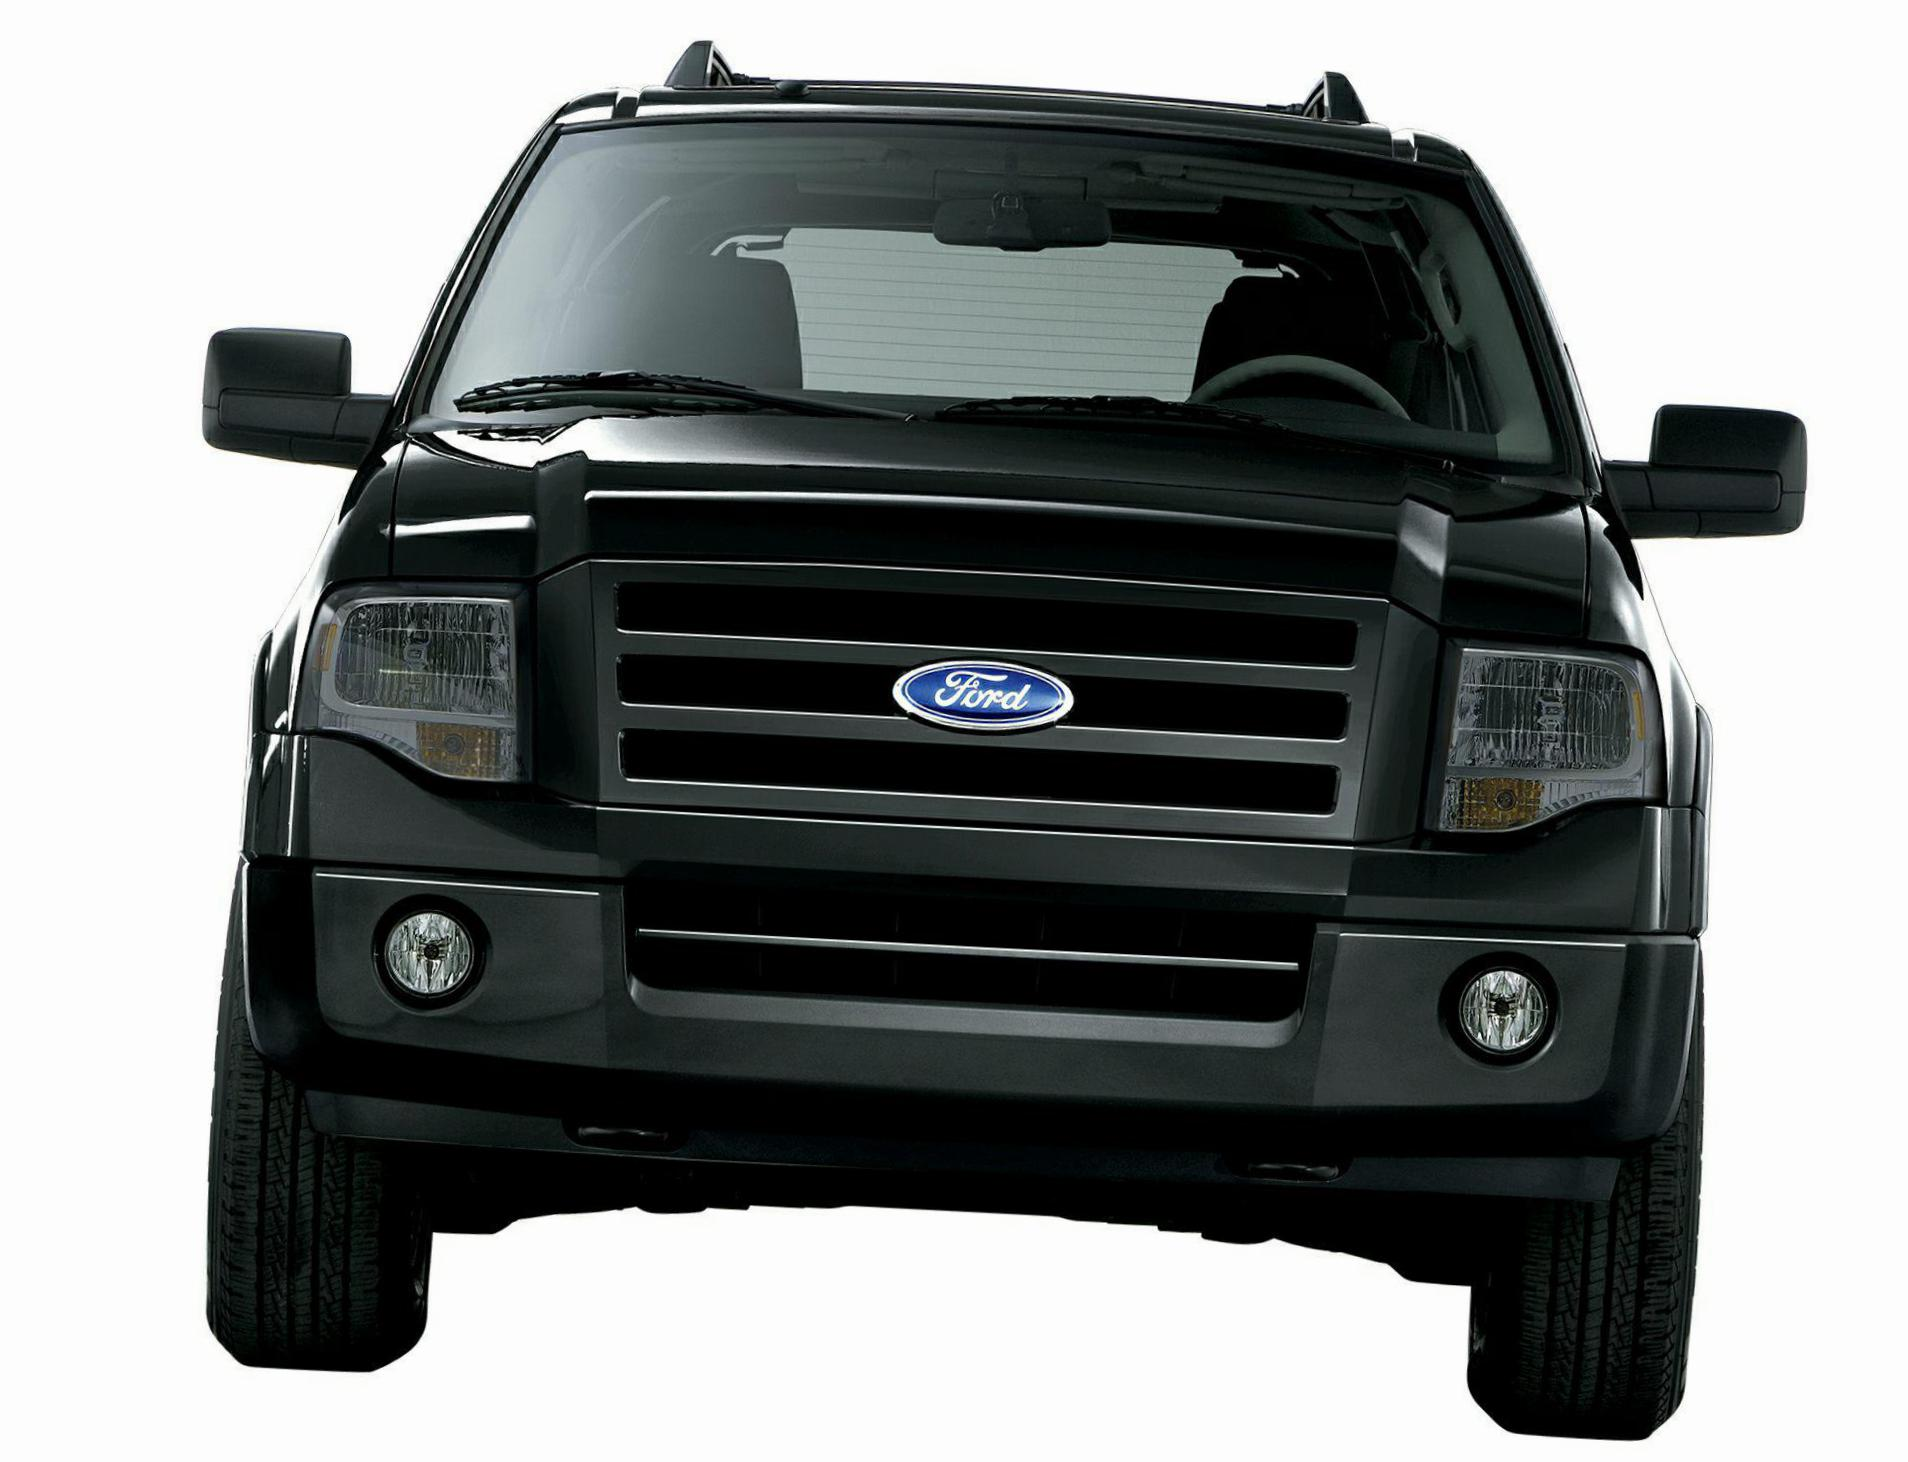 Expedition Ford Specifications 2006